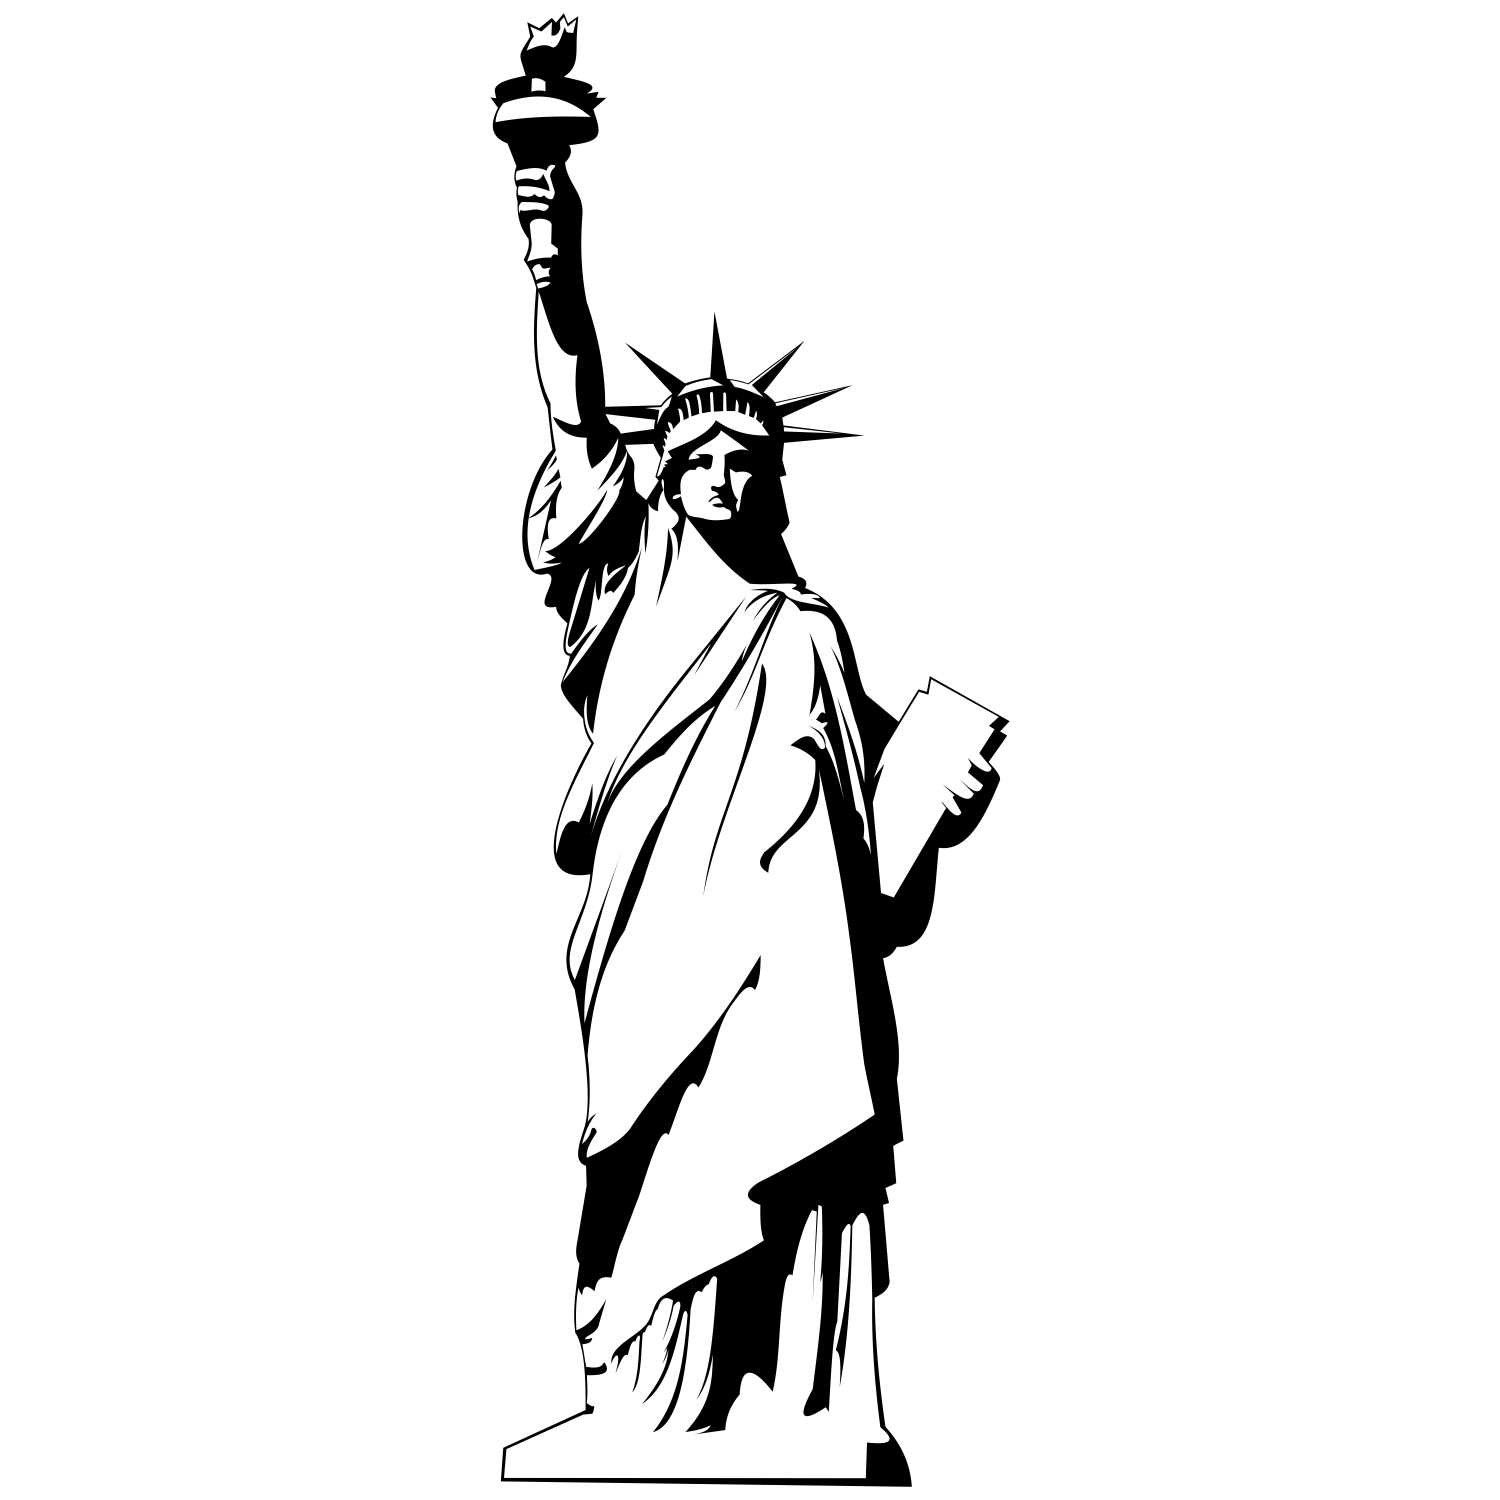 Statue icon clipart vector black and white Statue Of Liberty Icon Png #219080 - Free Icons Library vector black and white